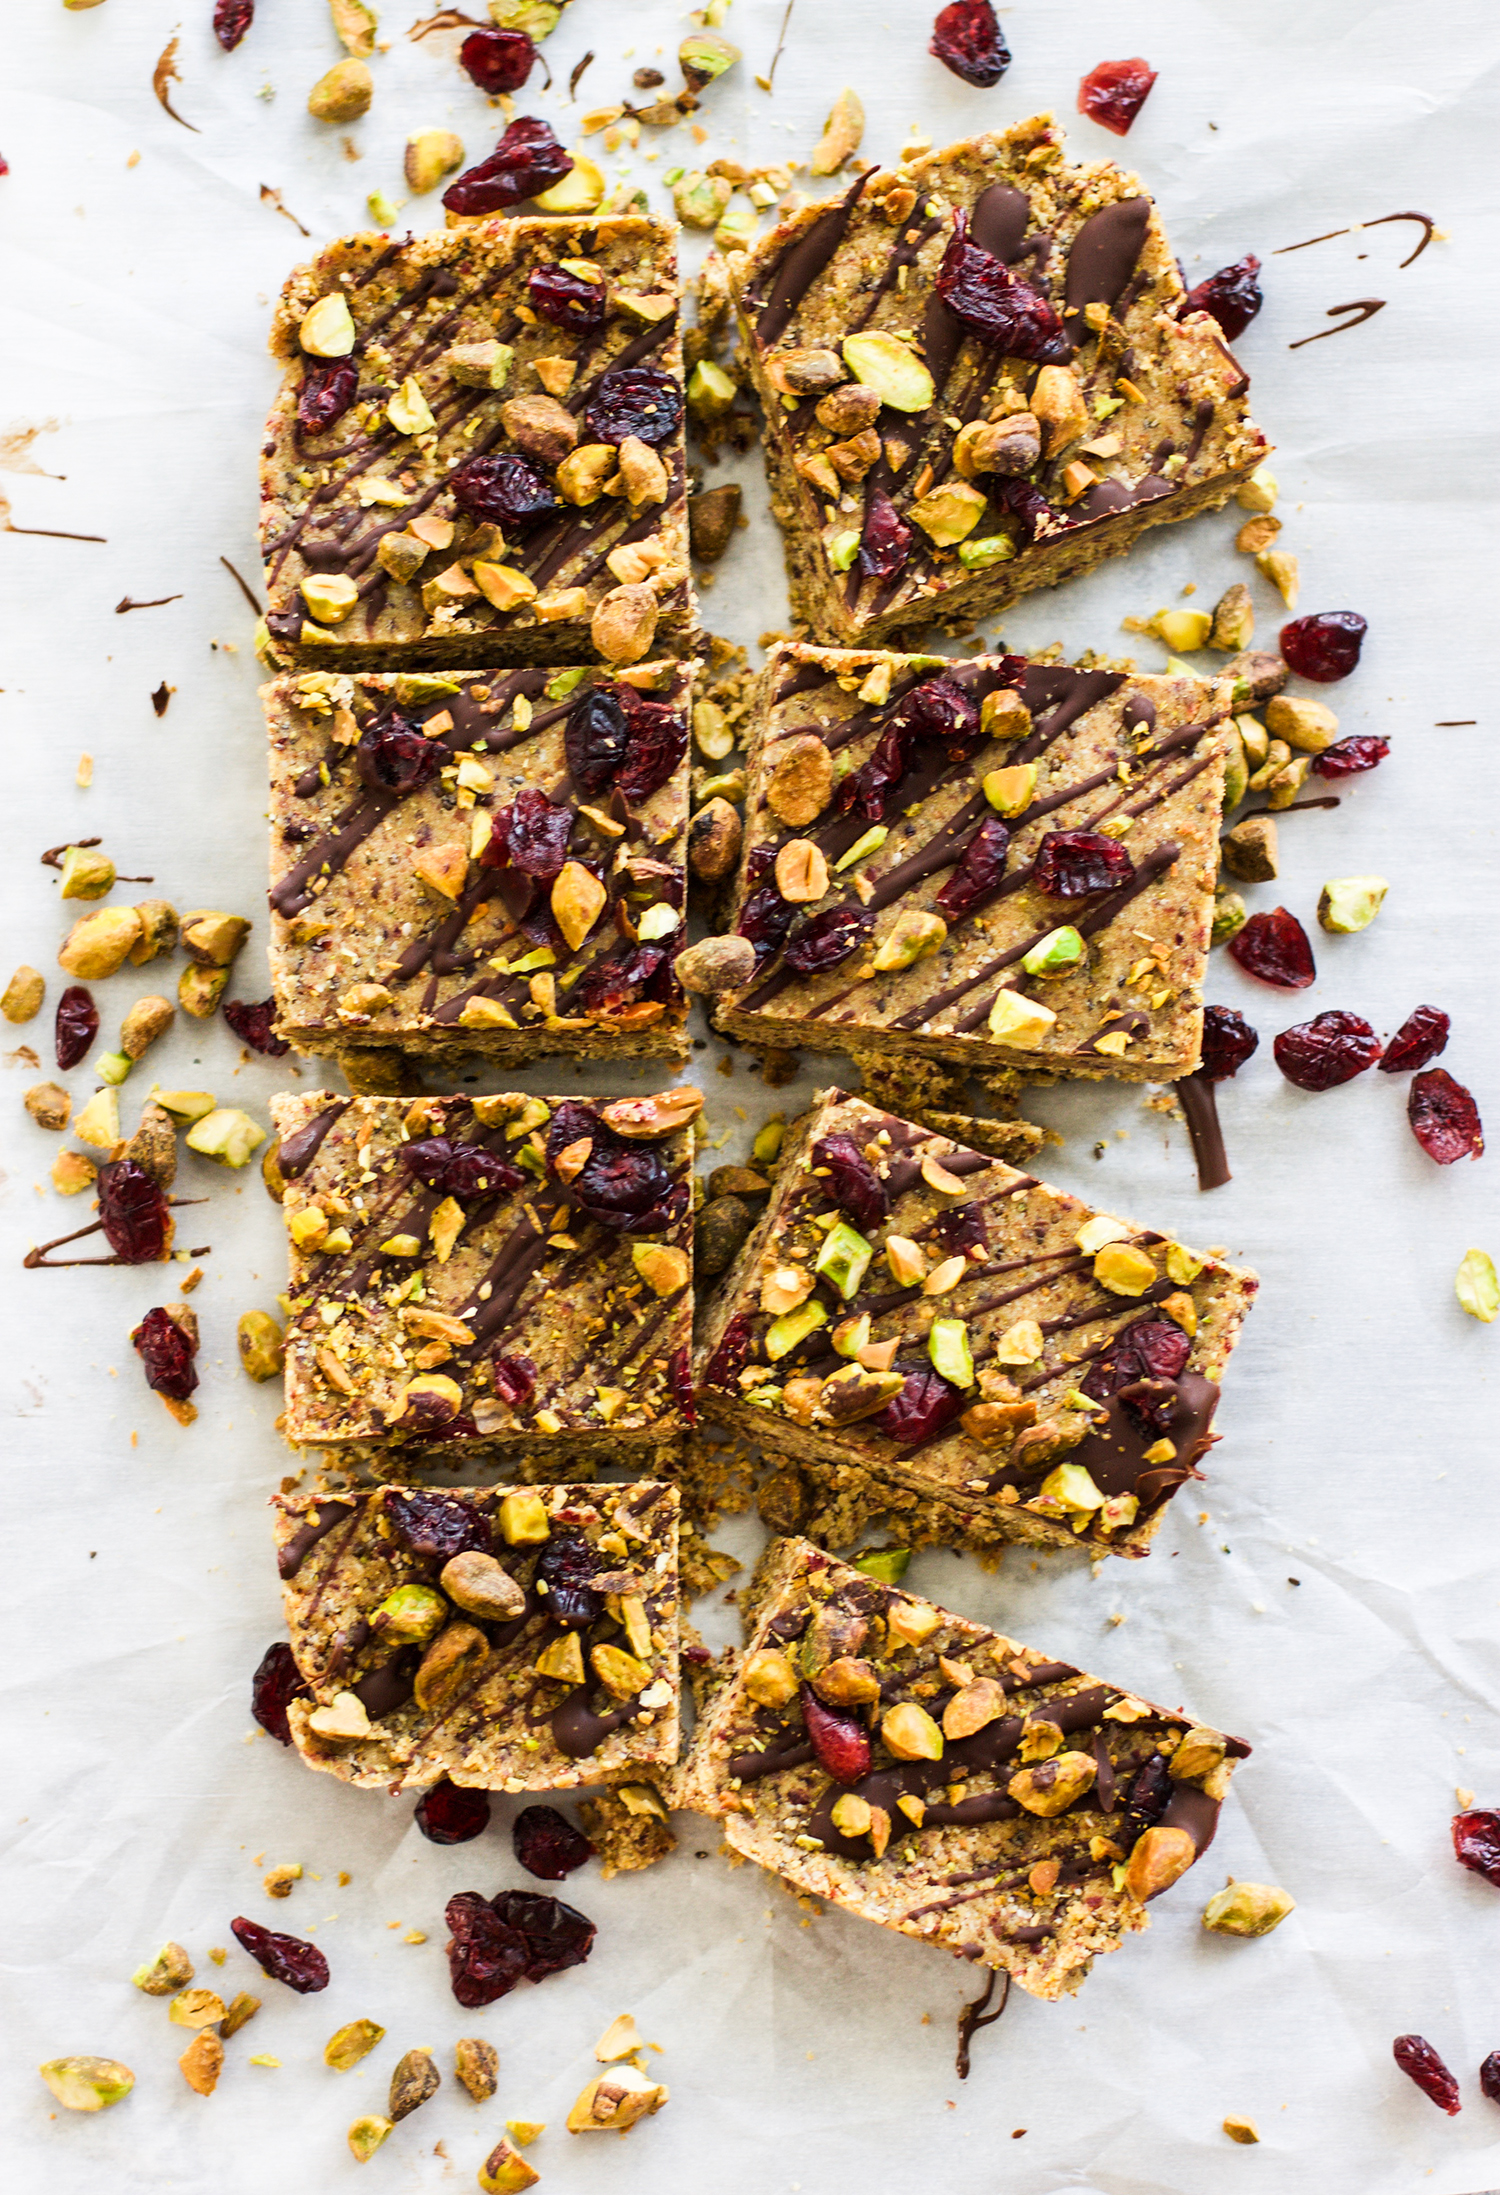 Gluten Free Pistachio Cranberry Bars: My Diary of Us